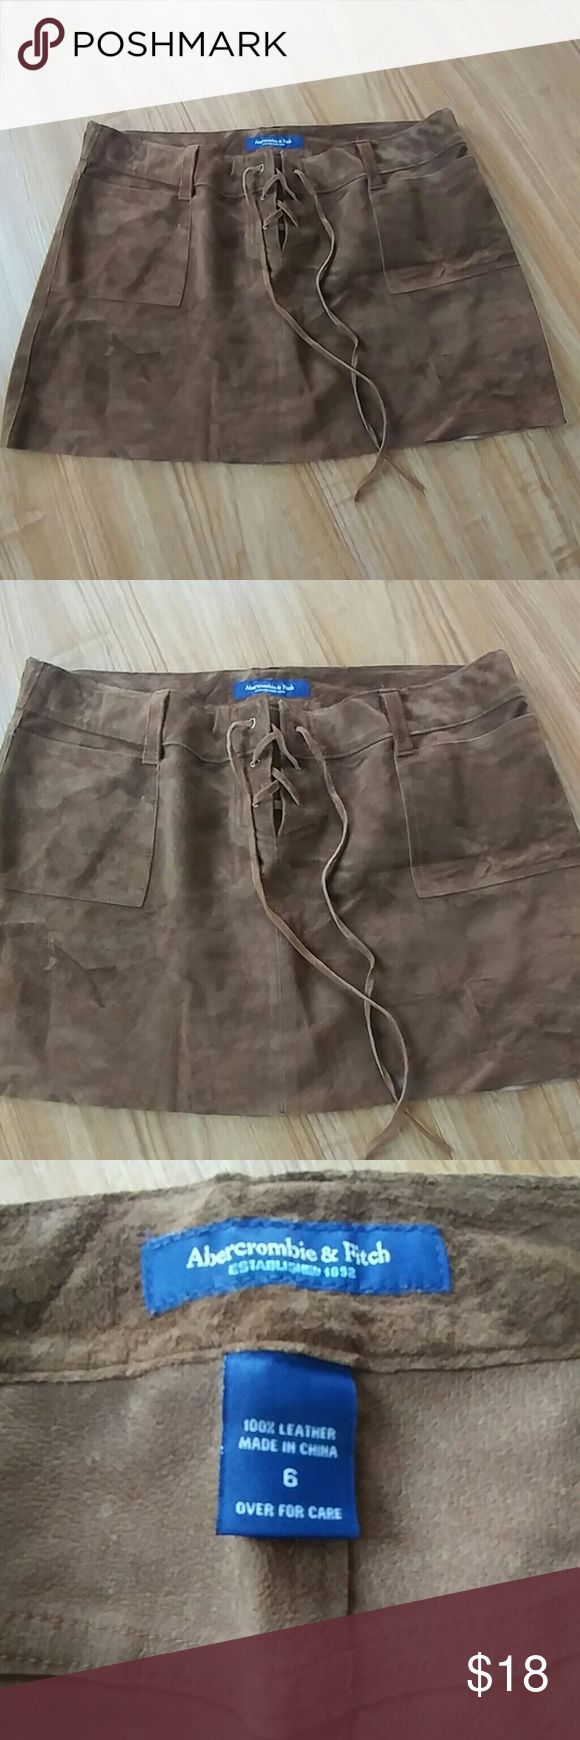 Abercrombie Fitch skirt 100% Leather good condition Abercrombie & Fitch Skirts Mini